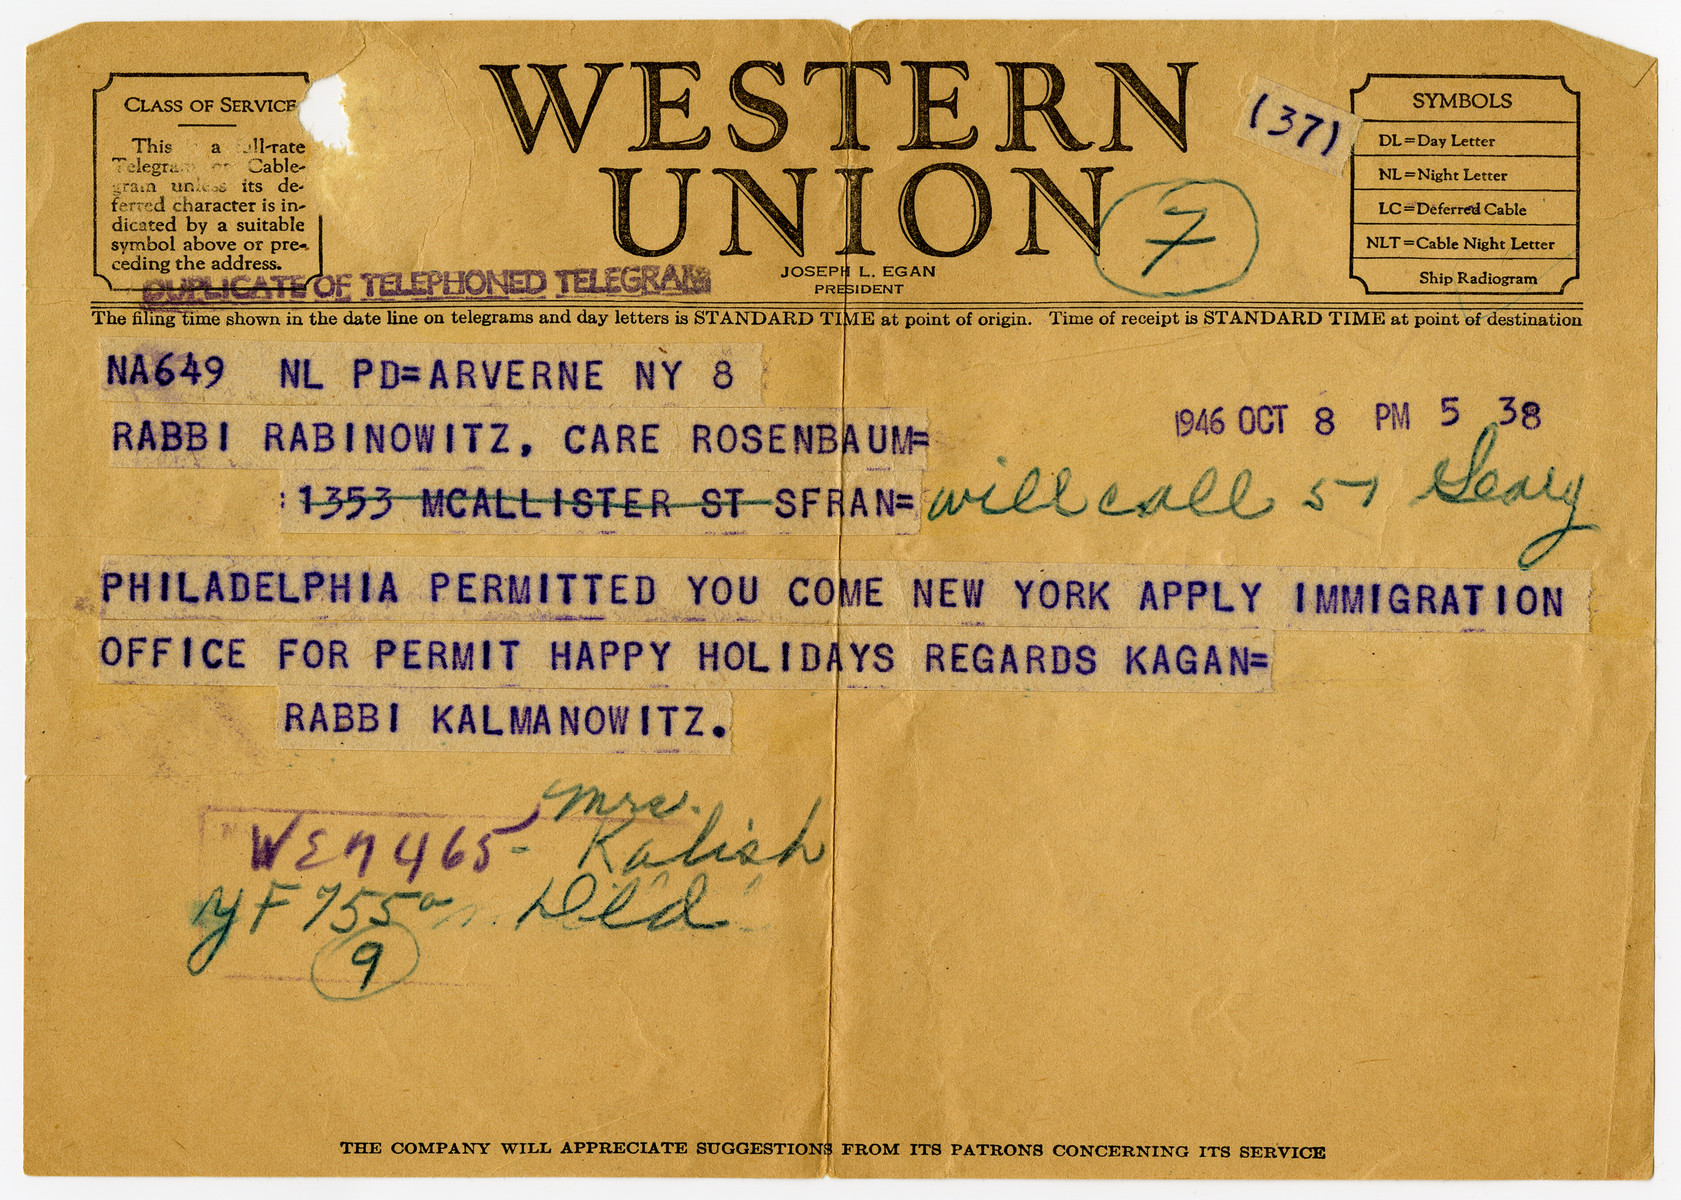 Telegram written by Rabbi Kalmanowitz, head of the Mir Yeshiva, to his student Jankiel Rabinowitz stating he is allowed to come to New York to apply for immigration permit.